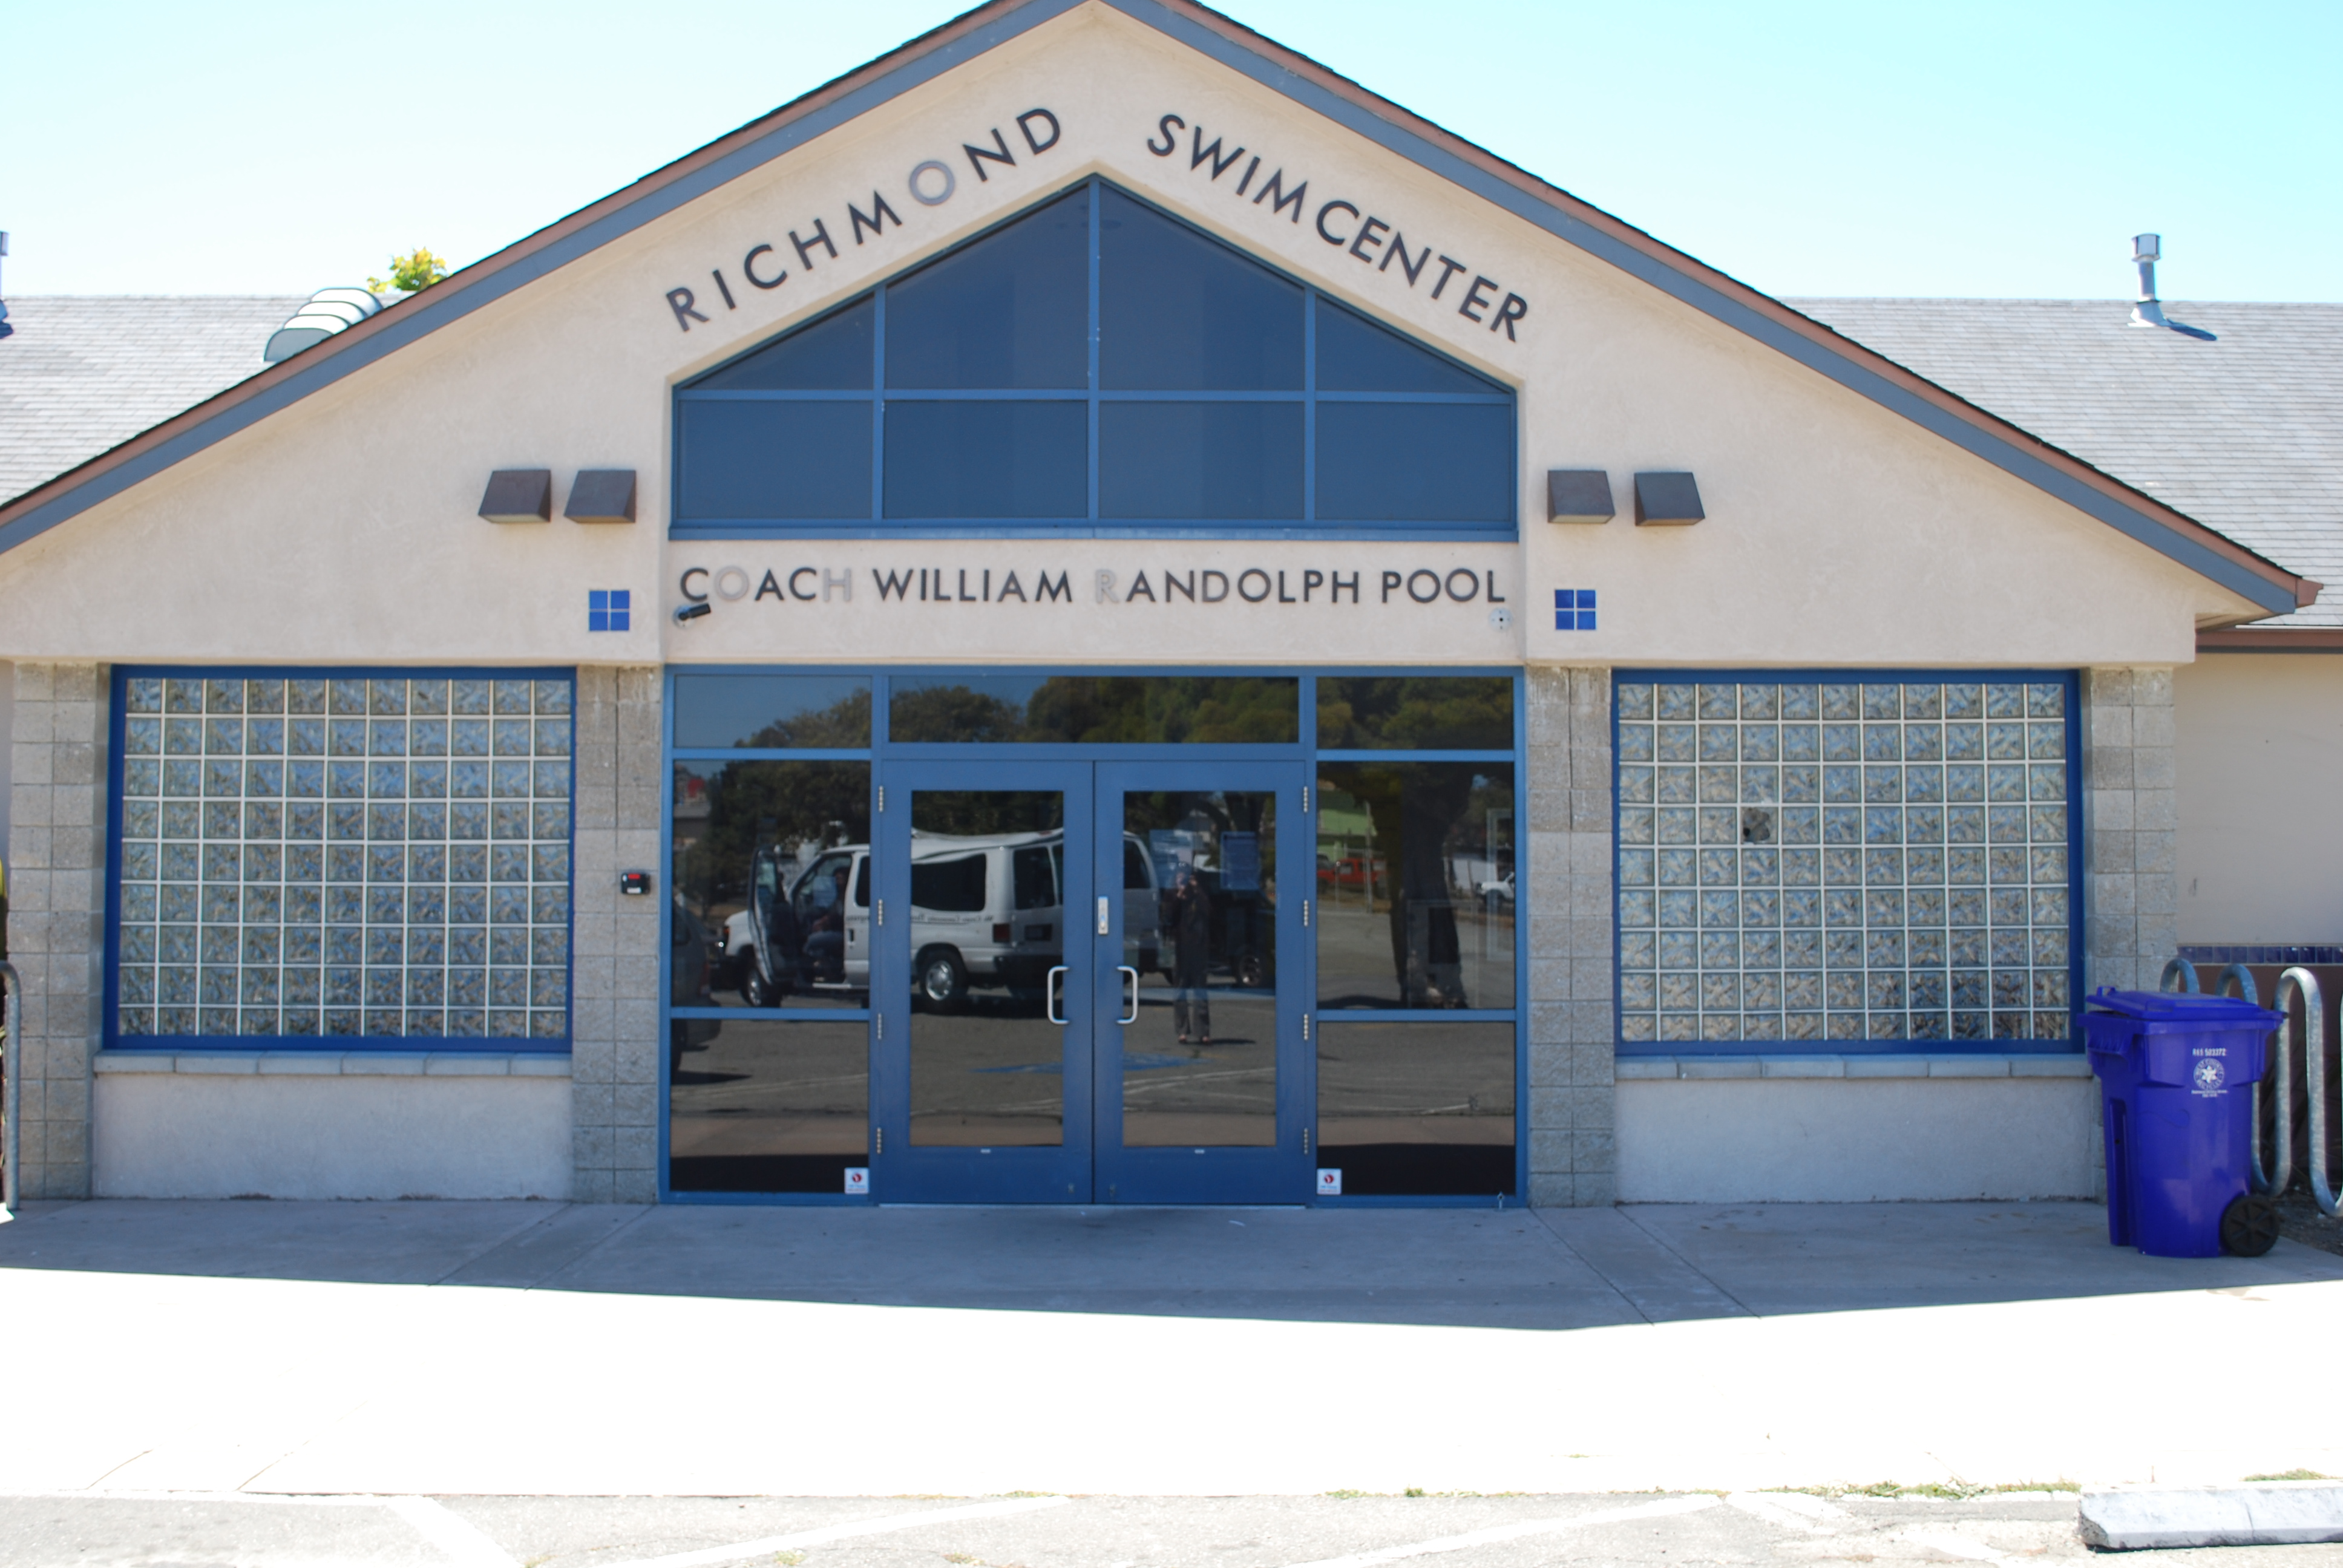 Front of Richmond Swim Center